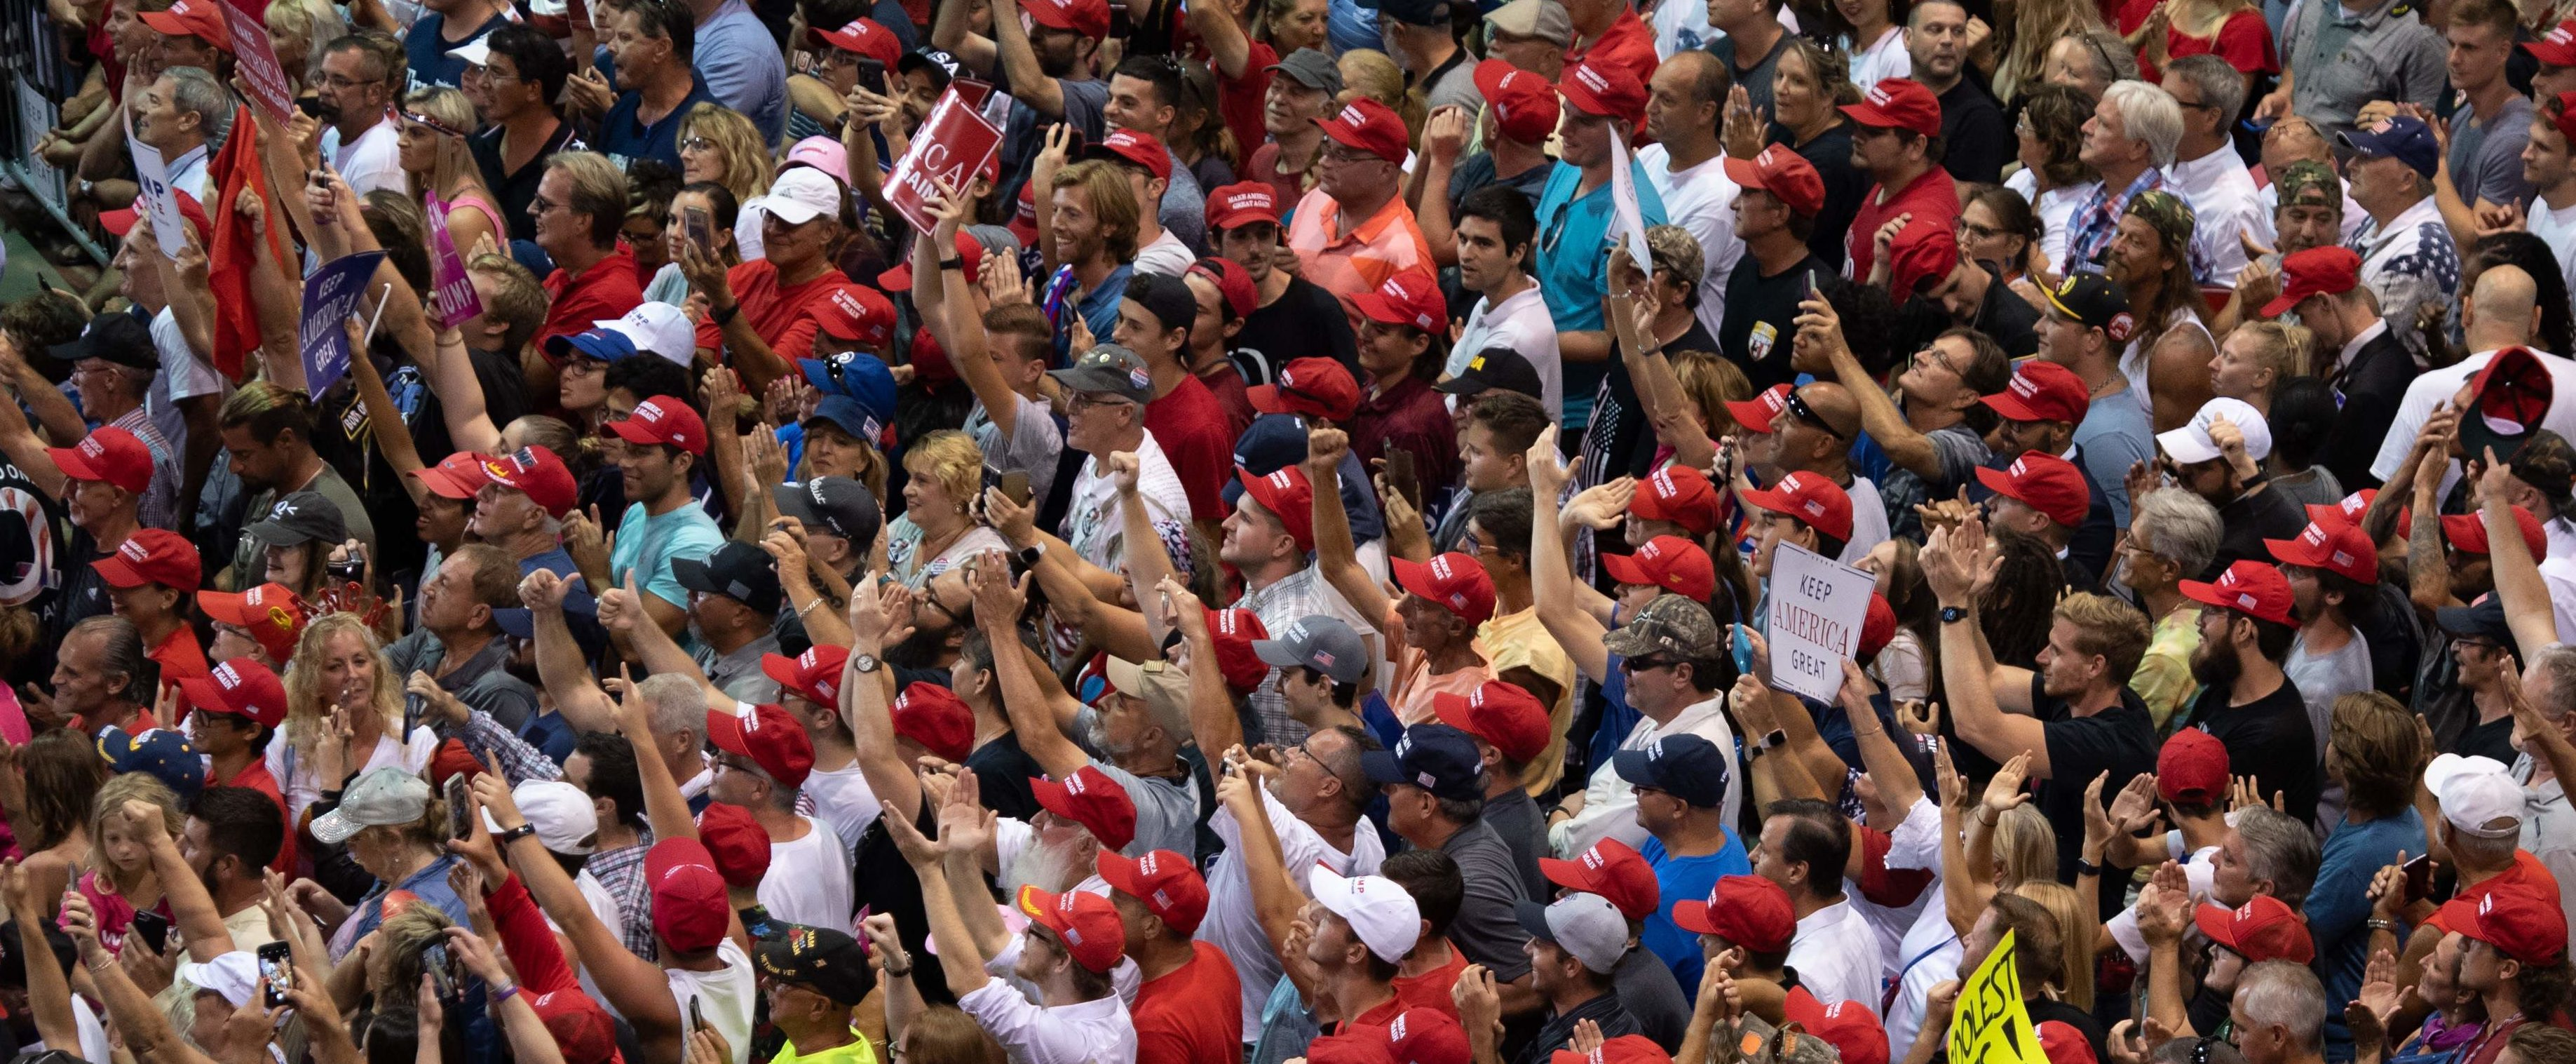 Supporters cheer as US President Donald Trump speaks during a campaign rally at Florida State Fairgrounds Expo Hall in Tampa, Florida, on July 31, 2018. (Photo by SAUL LOEB / AFP)